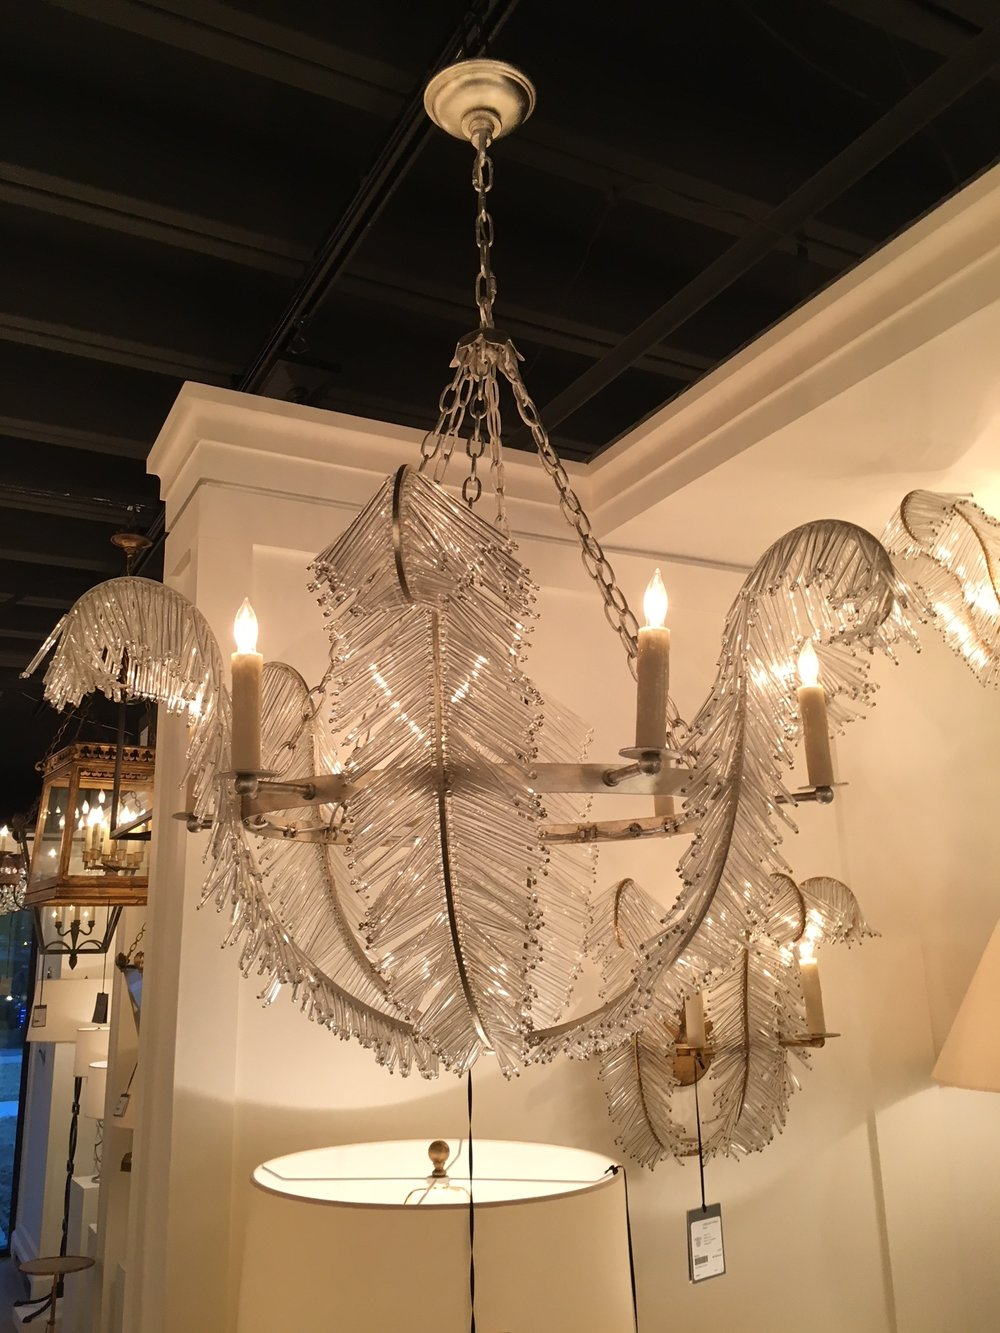 Was happy to stop by one of my favorite lighting companies,  Visual Comfort & Co.  They carry some really unique pieces from a variety of designers and brands. They're my go-to lighting company.